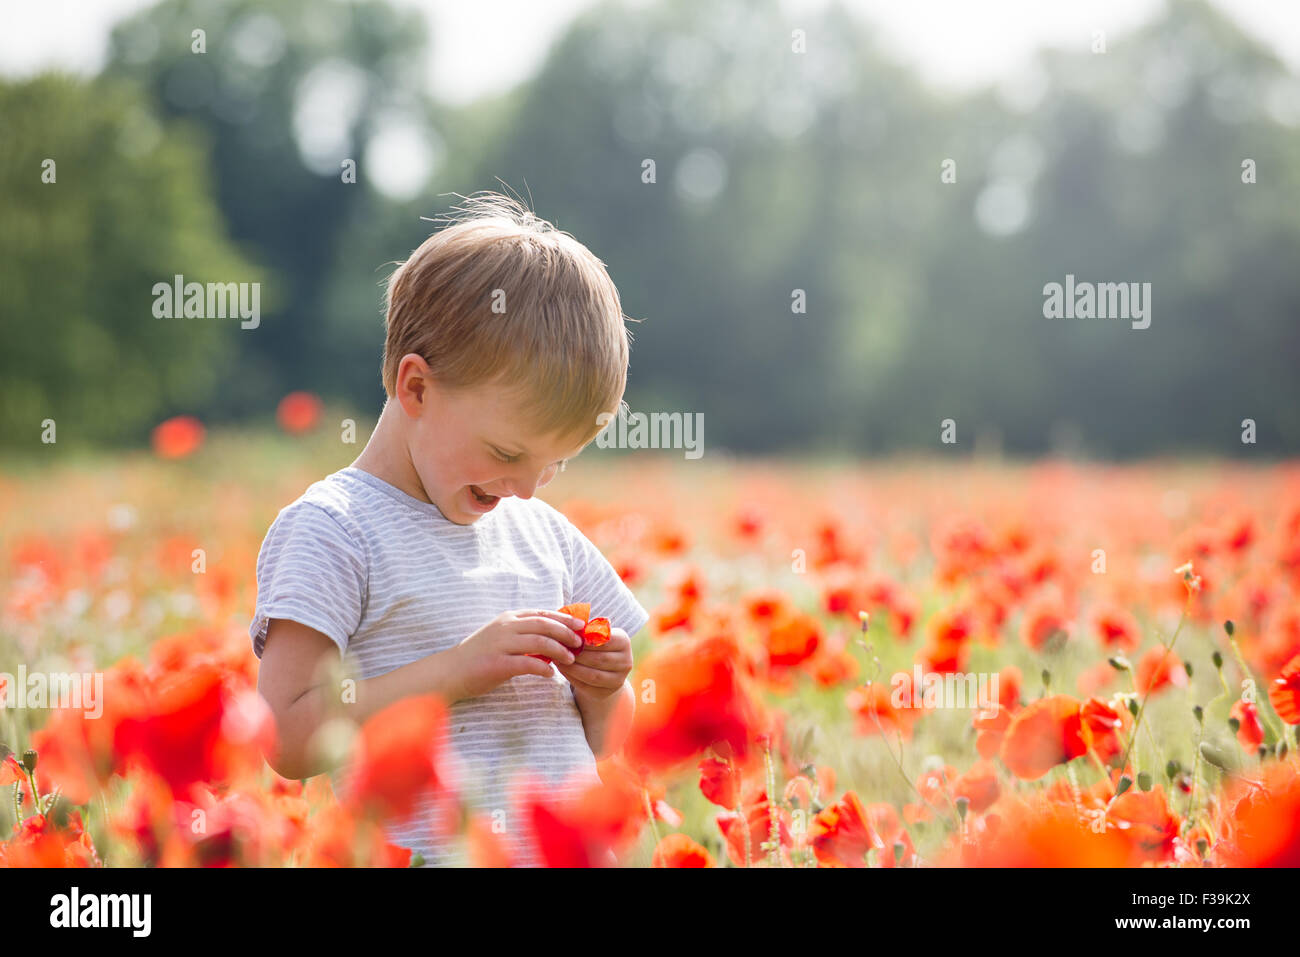 Smiling Boy standing in a poppy field - Stock Image